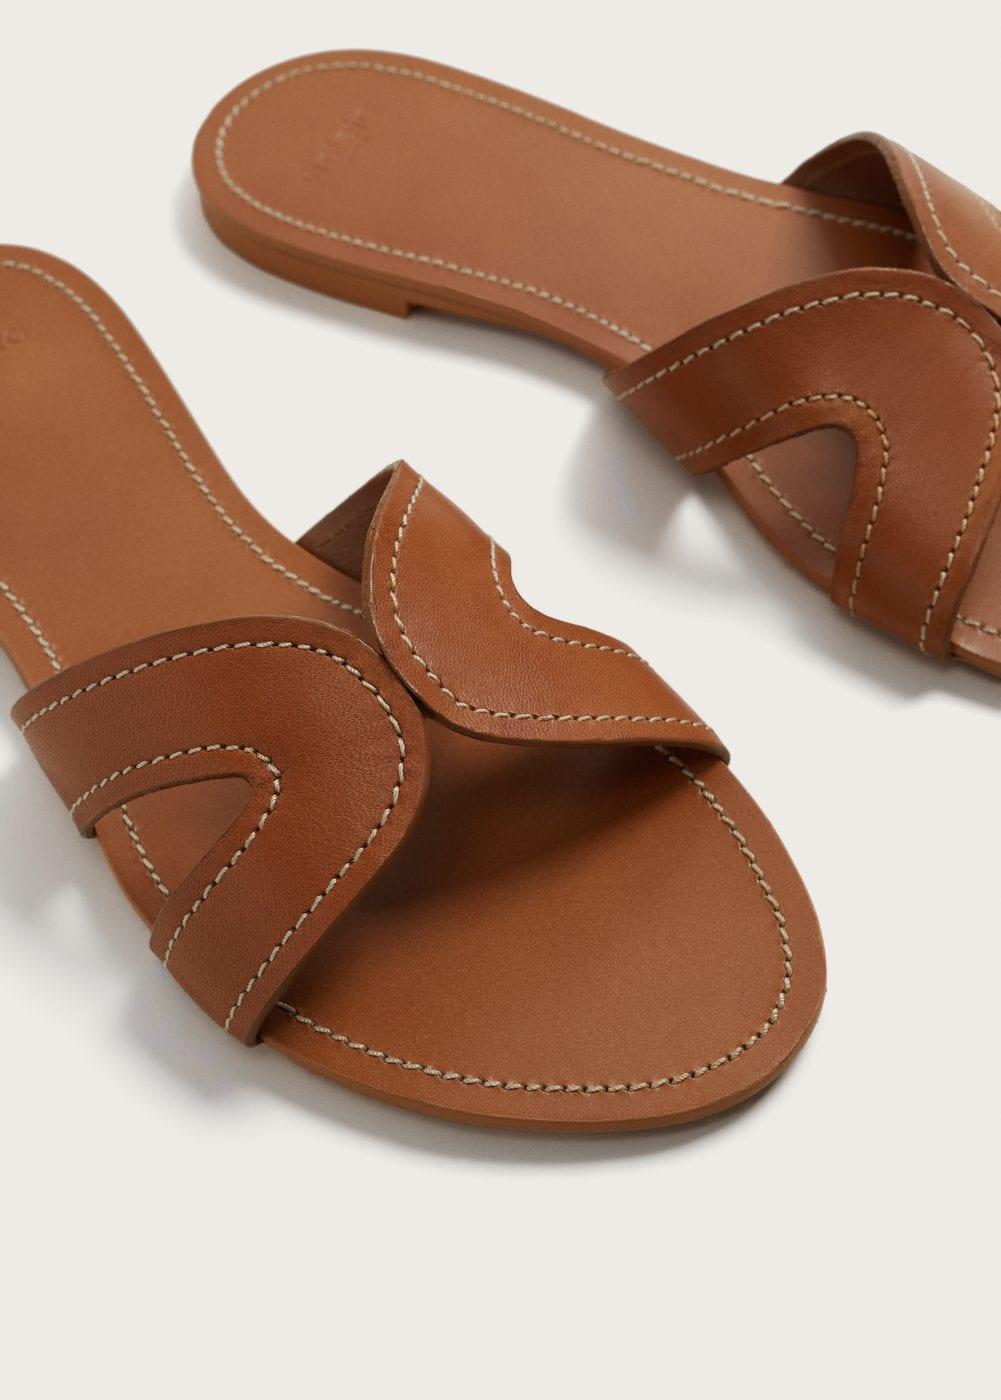 Mango tan leather flat sandals - Little Spree